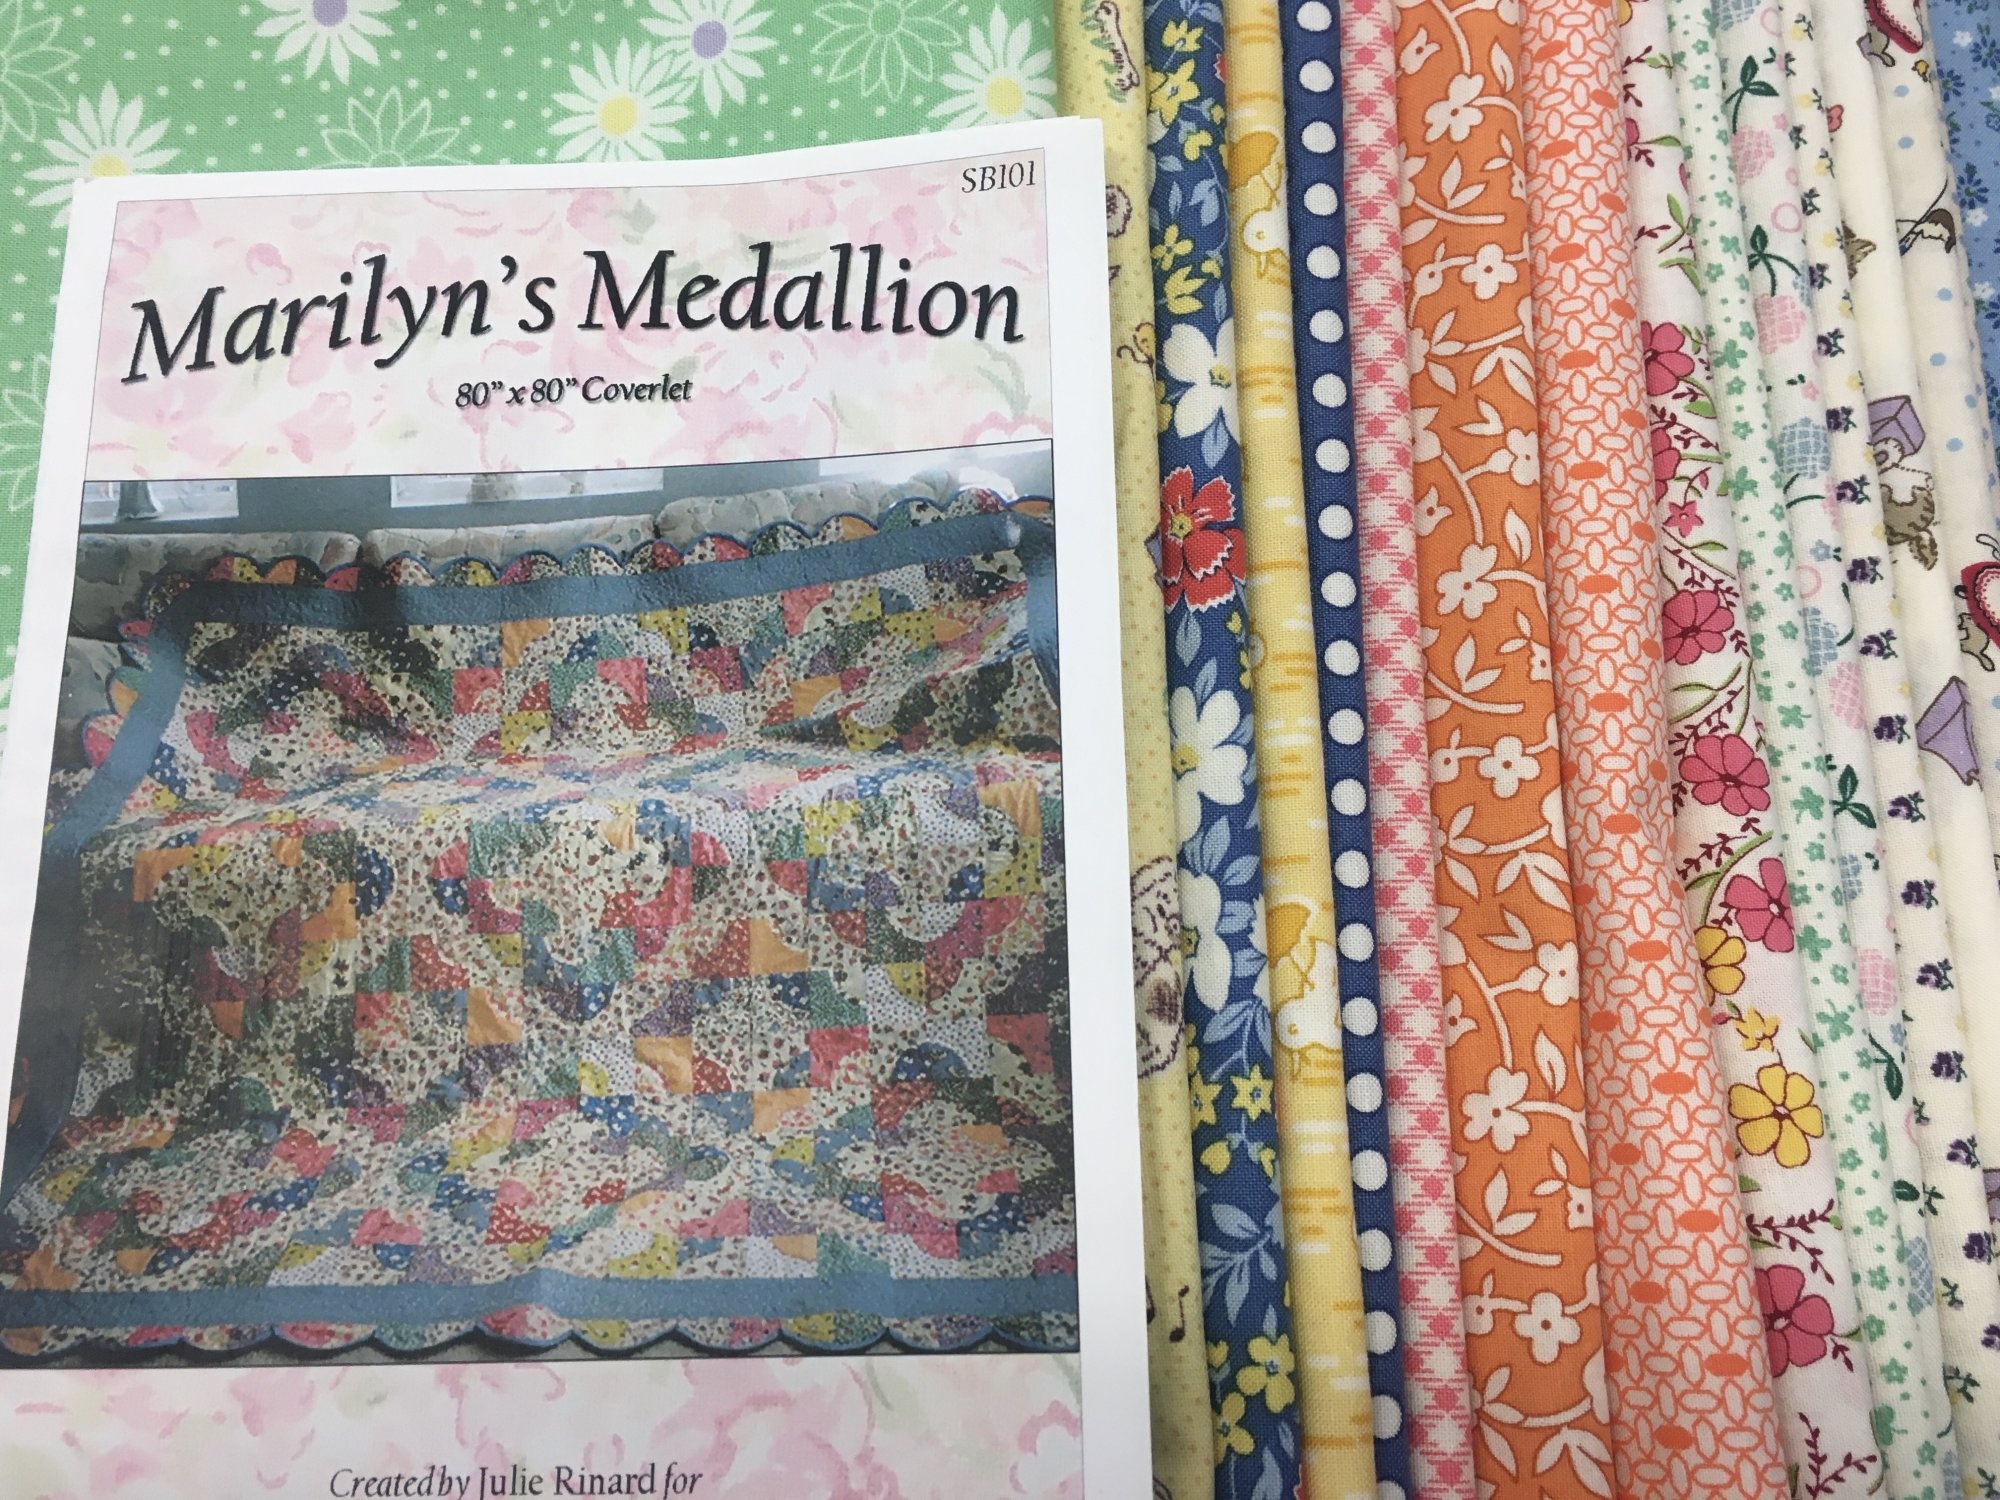 Marilyn's Medallion Quilt Kit featuring 30's Reproduction Prints